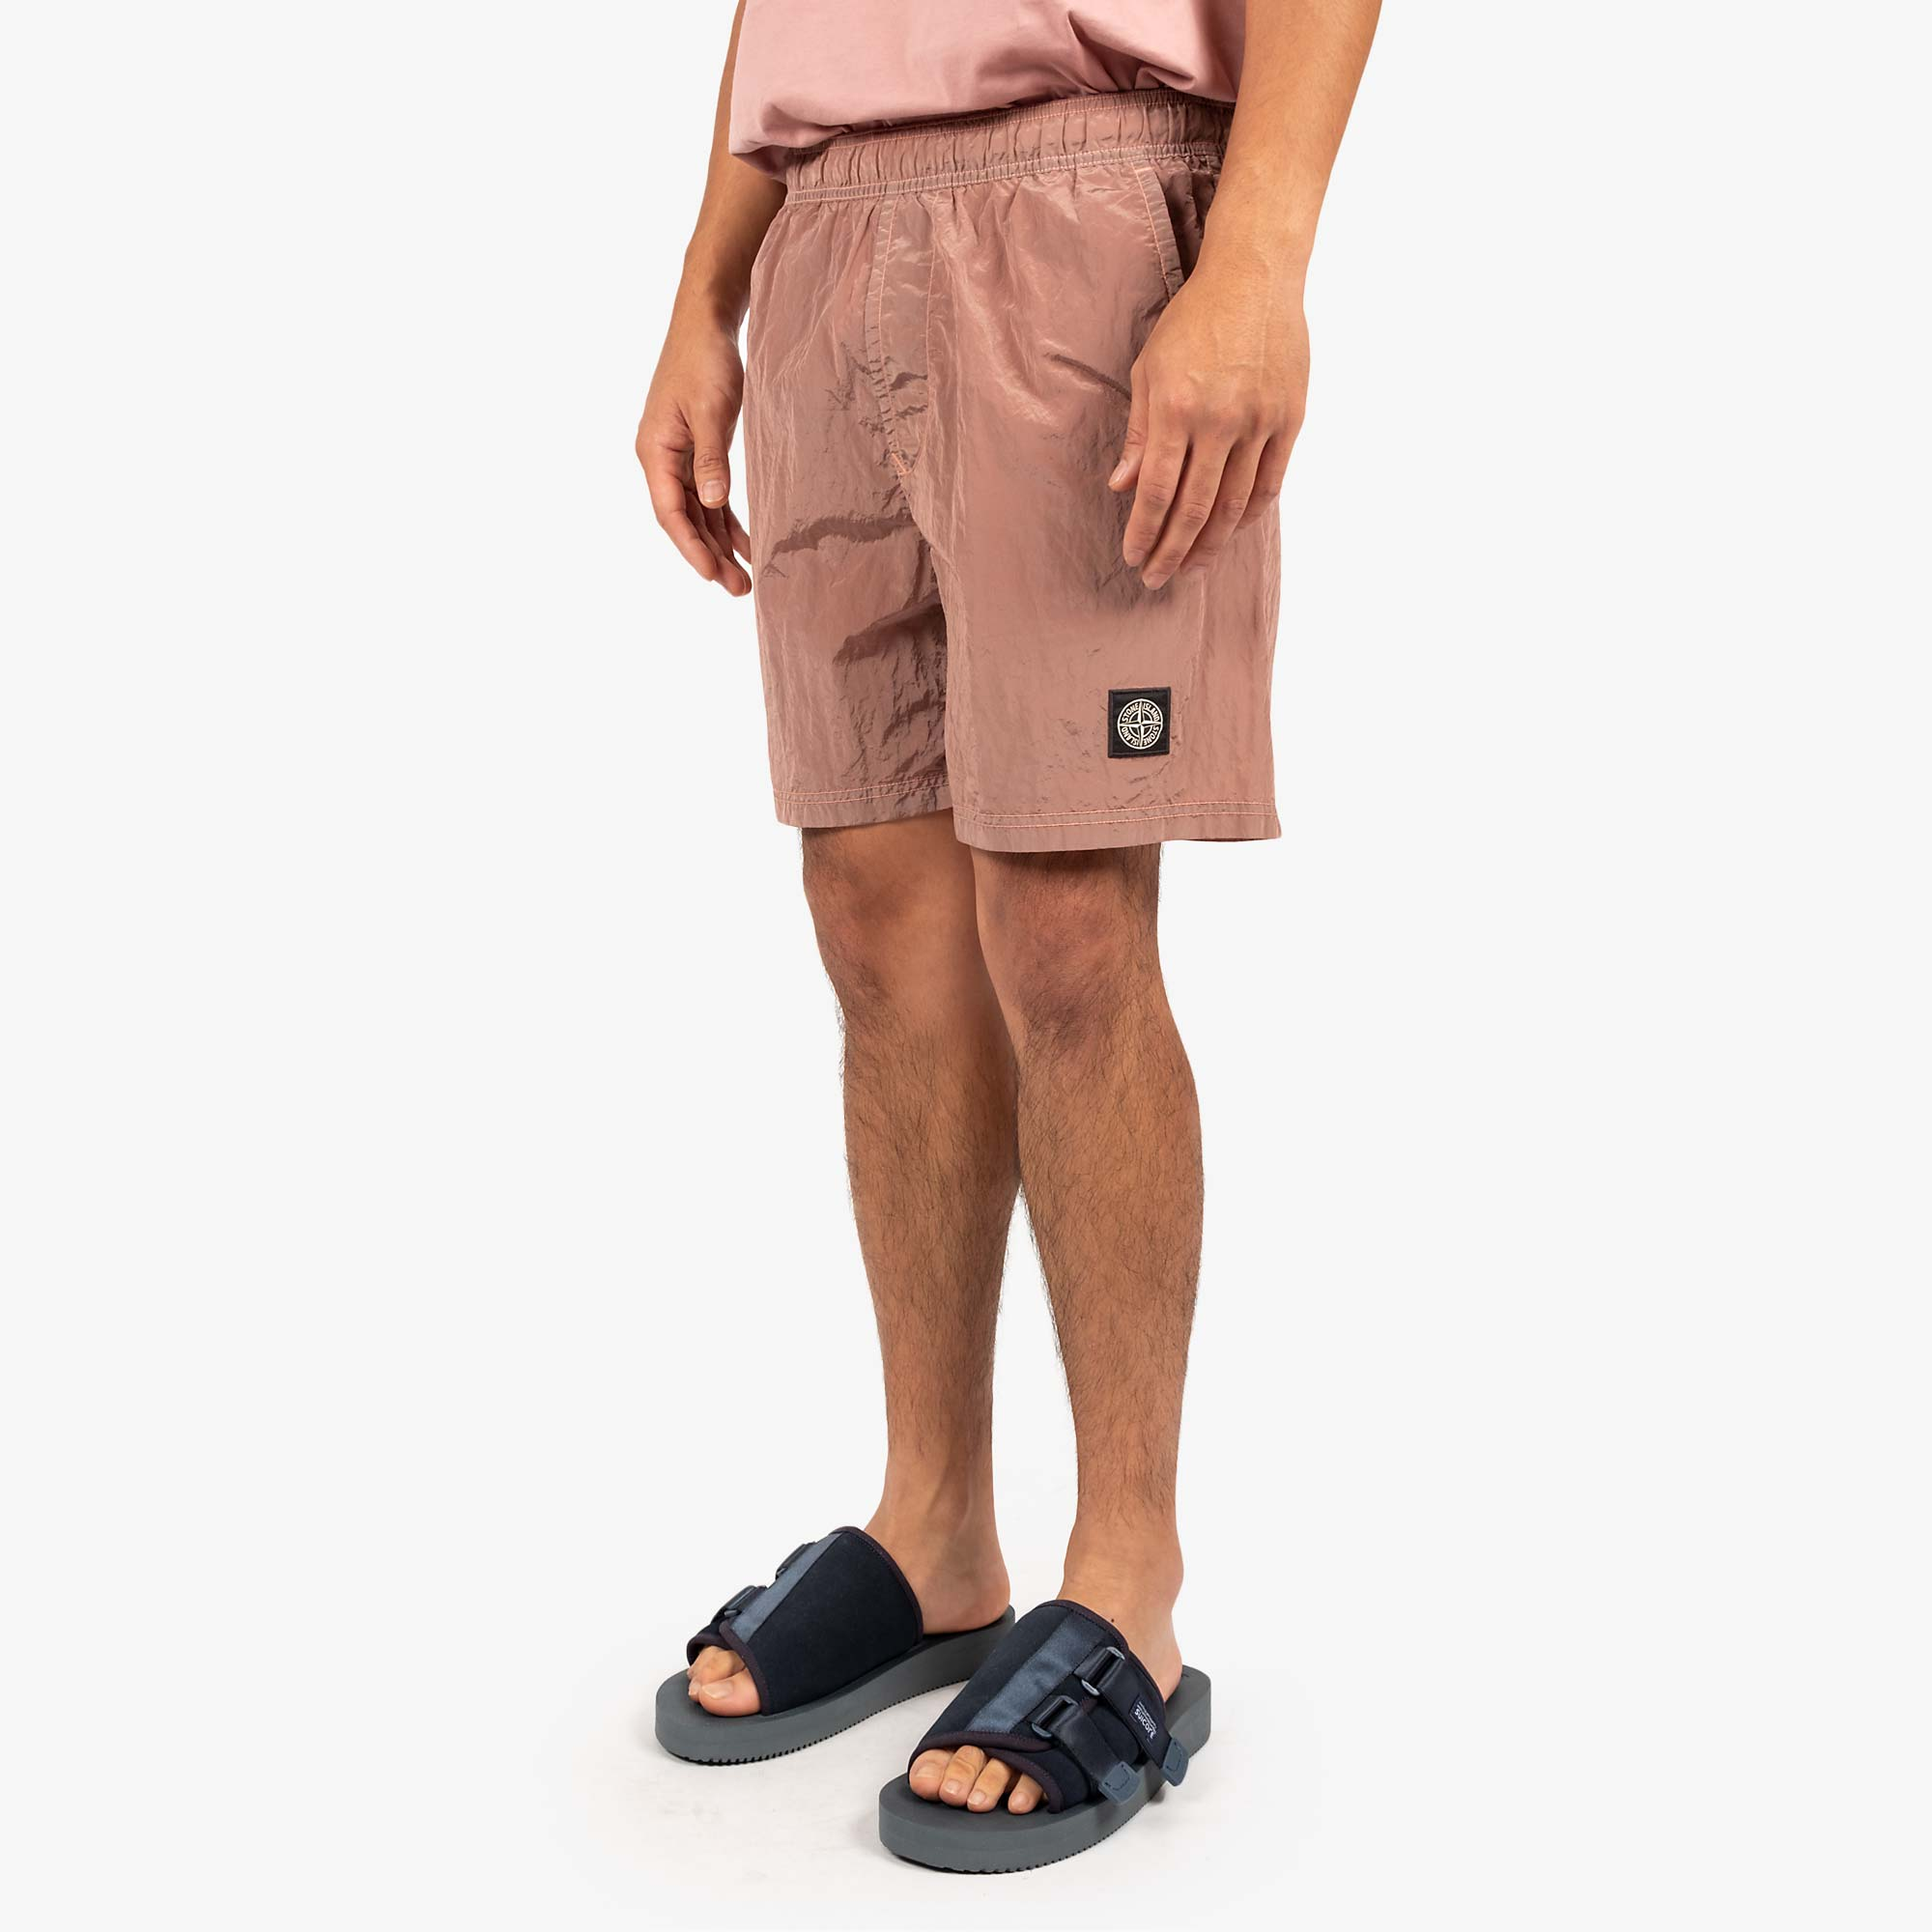 Stone Island Nylon Metal Swim Shorts 7415B0943 Shorts - Rose Quartz 2